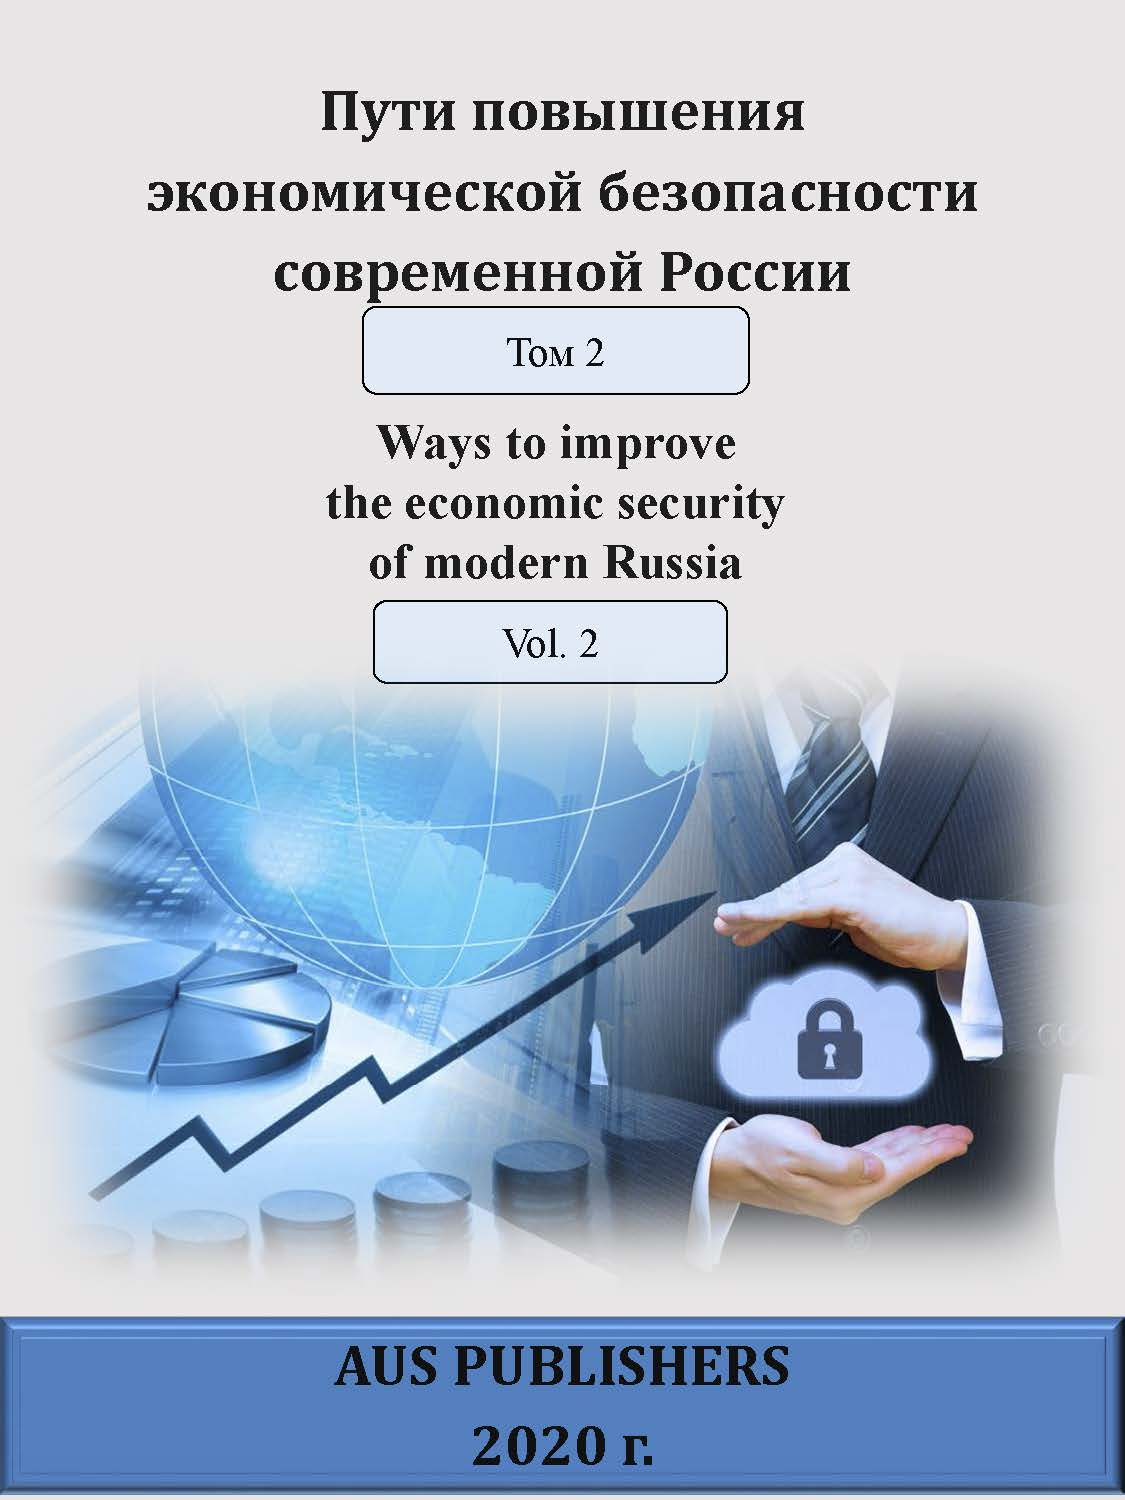 WAYS TO IMPROVE THE ECONOMIC SECURITY OF MODERN RUSSIA. VOL.2